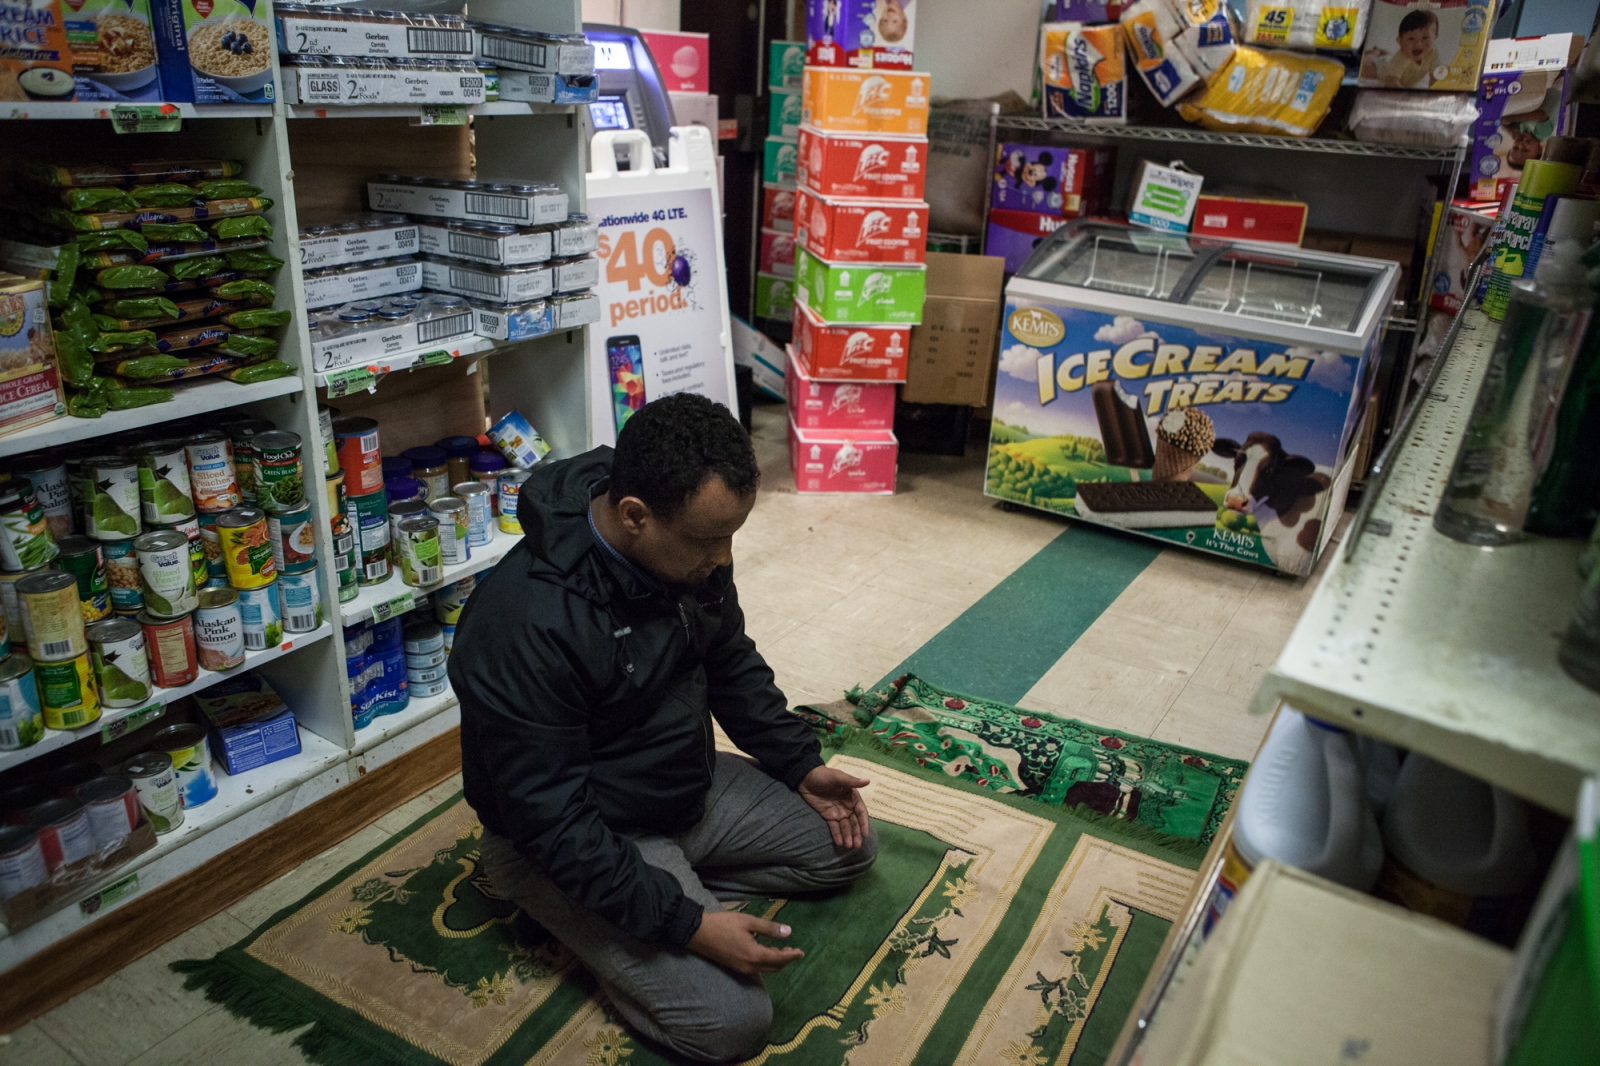 Haji Yusuf, 37, performs an afternoon prayer in an isle of the Mogadishu Mall market in St. Cloud, MN. The small city, located about 65 miles northwest of the Twin Cities, has been attractive to Somalis primarily because of job opportunities at local manufacturing and meat packing plants.